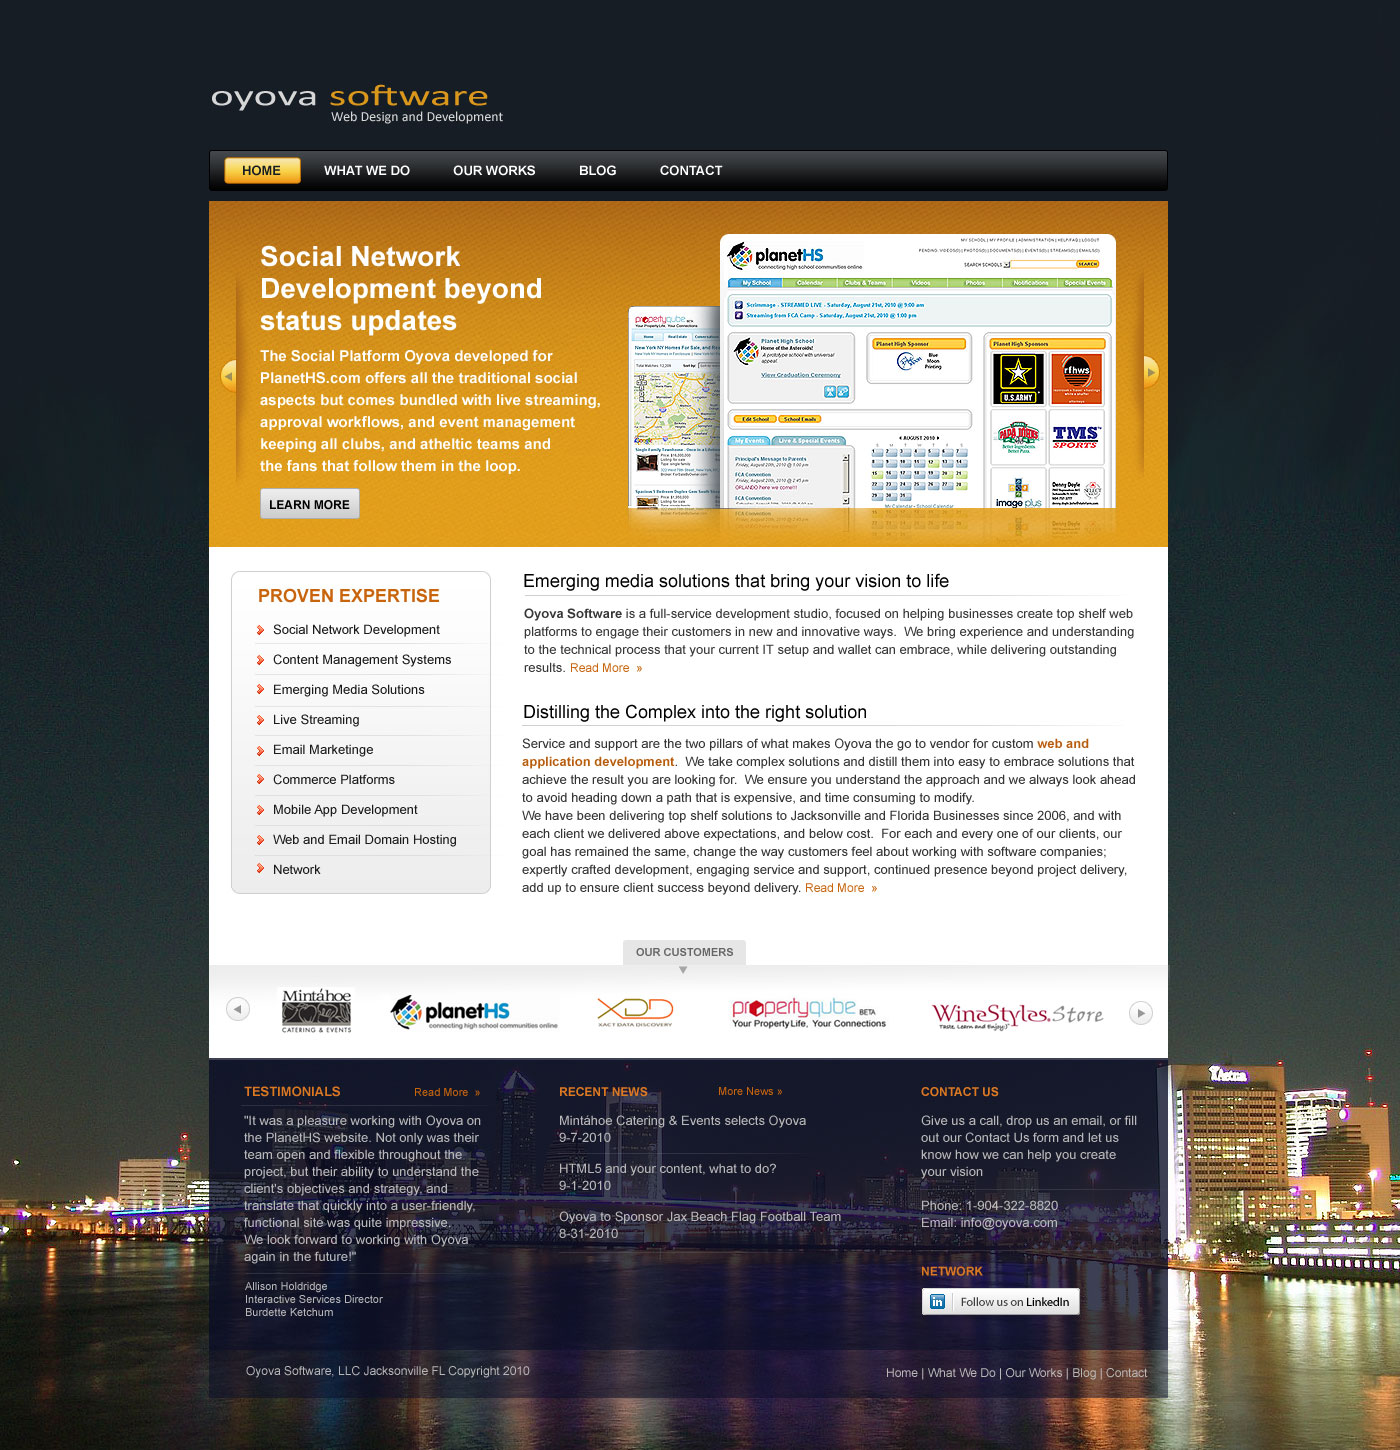 oyova software llc home page design ideaflick